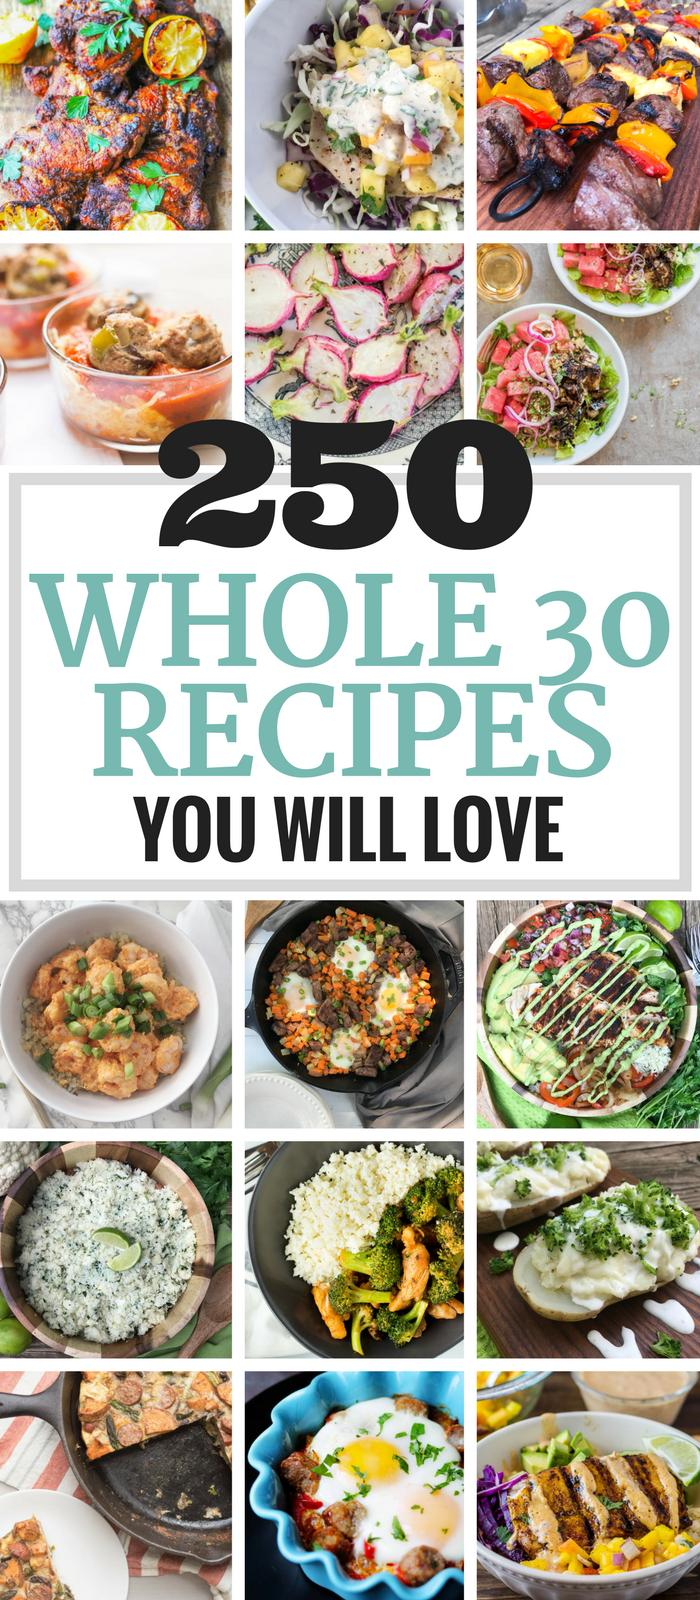 250 Whole 30 Recipes You Will Love via The Whole Cook